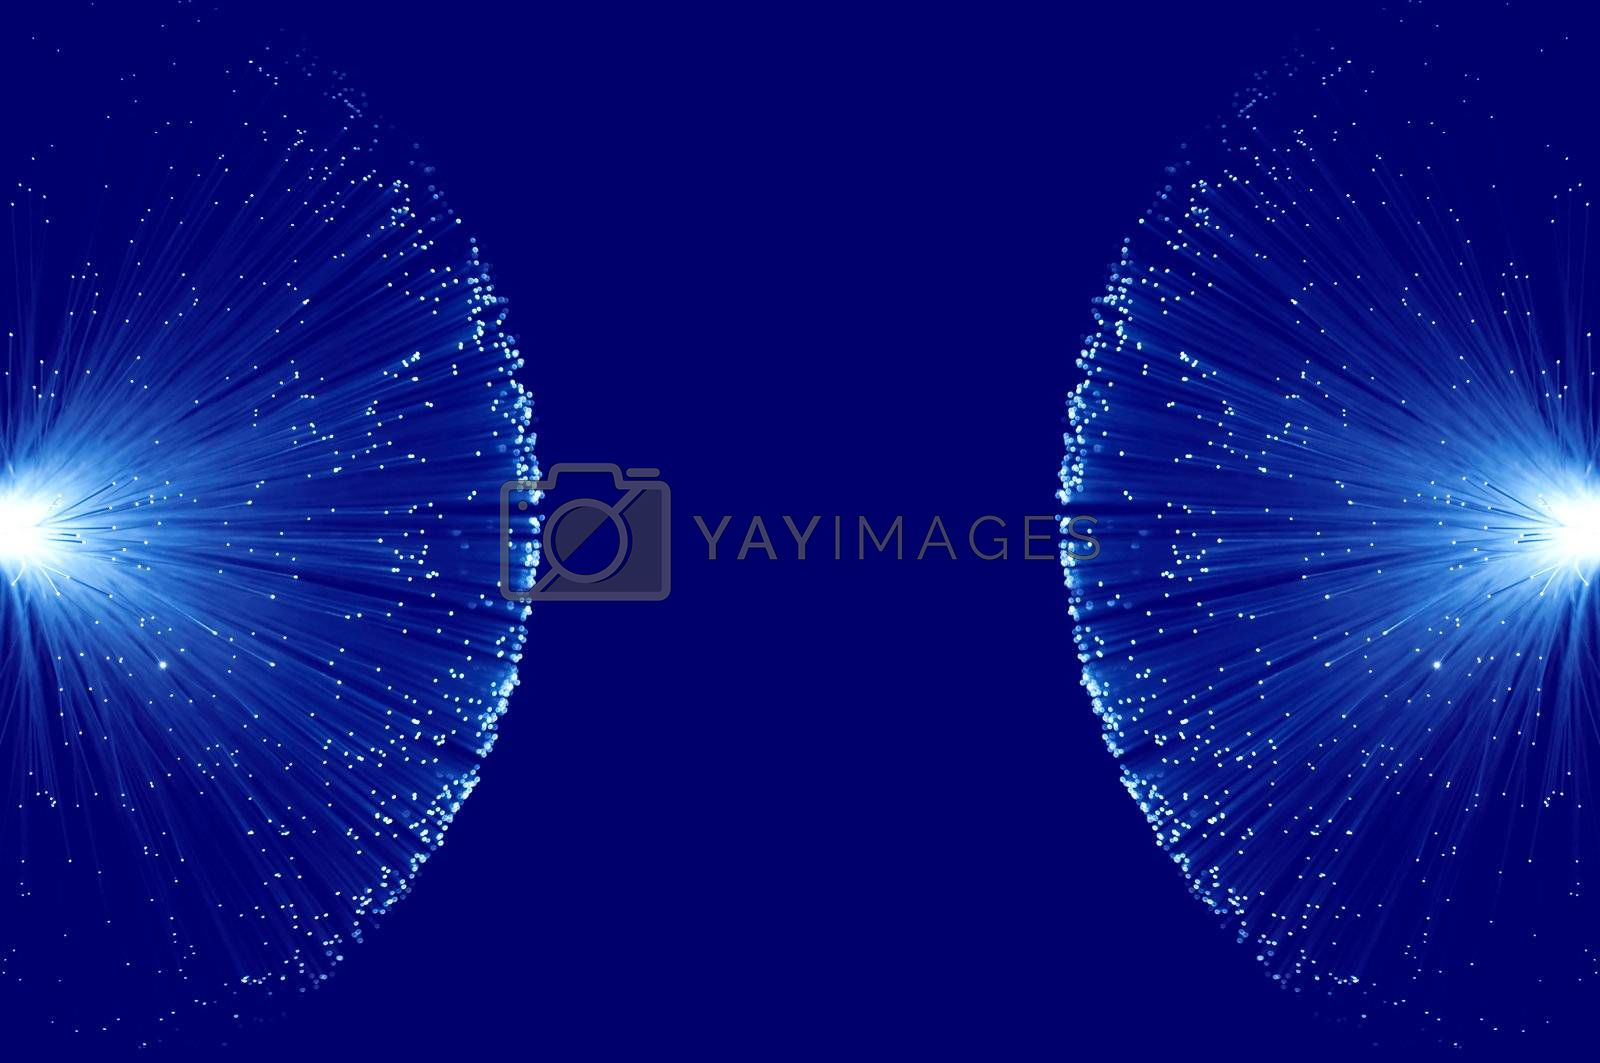 Two groups of illuminated blue fibre optic light strands eminating from the left and right image border against a blue background